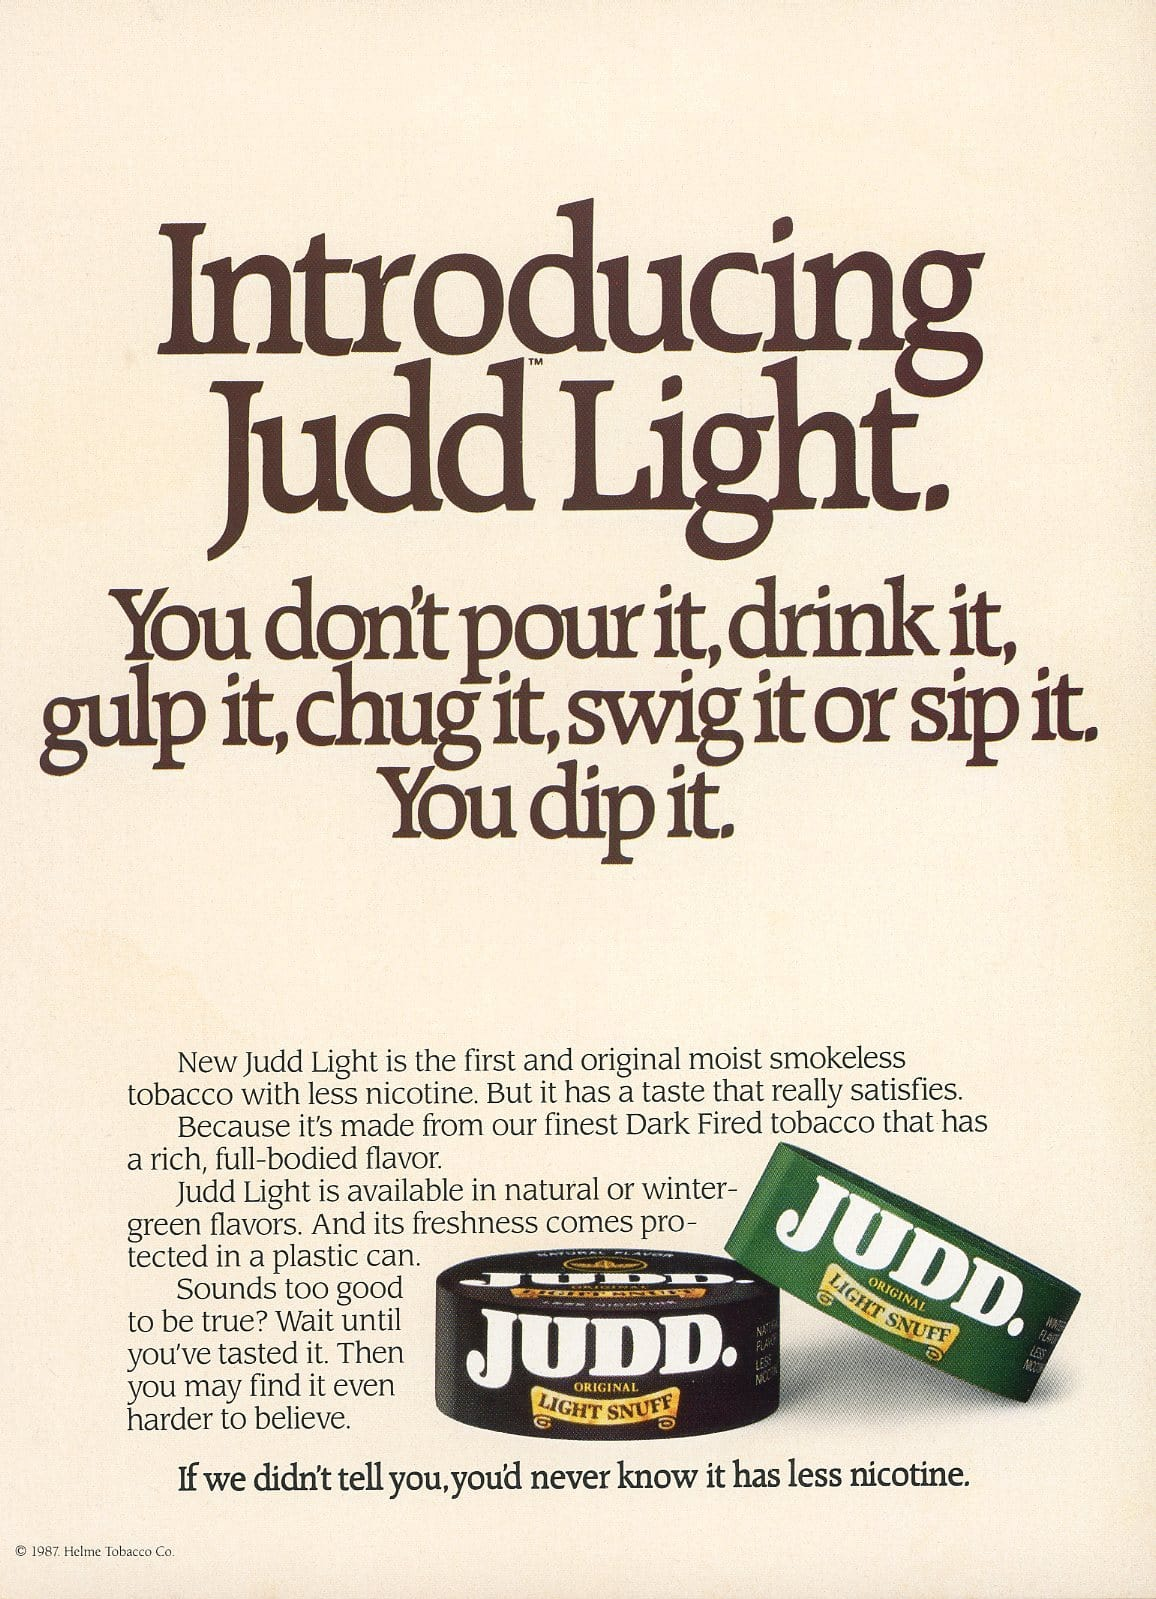 1980's Judd Light Snuff Tobacco Advertisement - Tobacciana Print Ad - Gift For Smoker